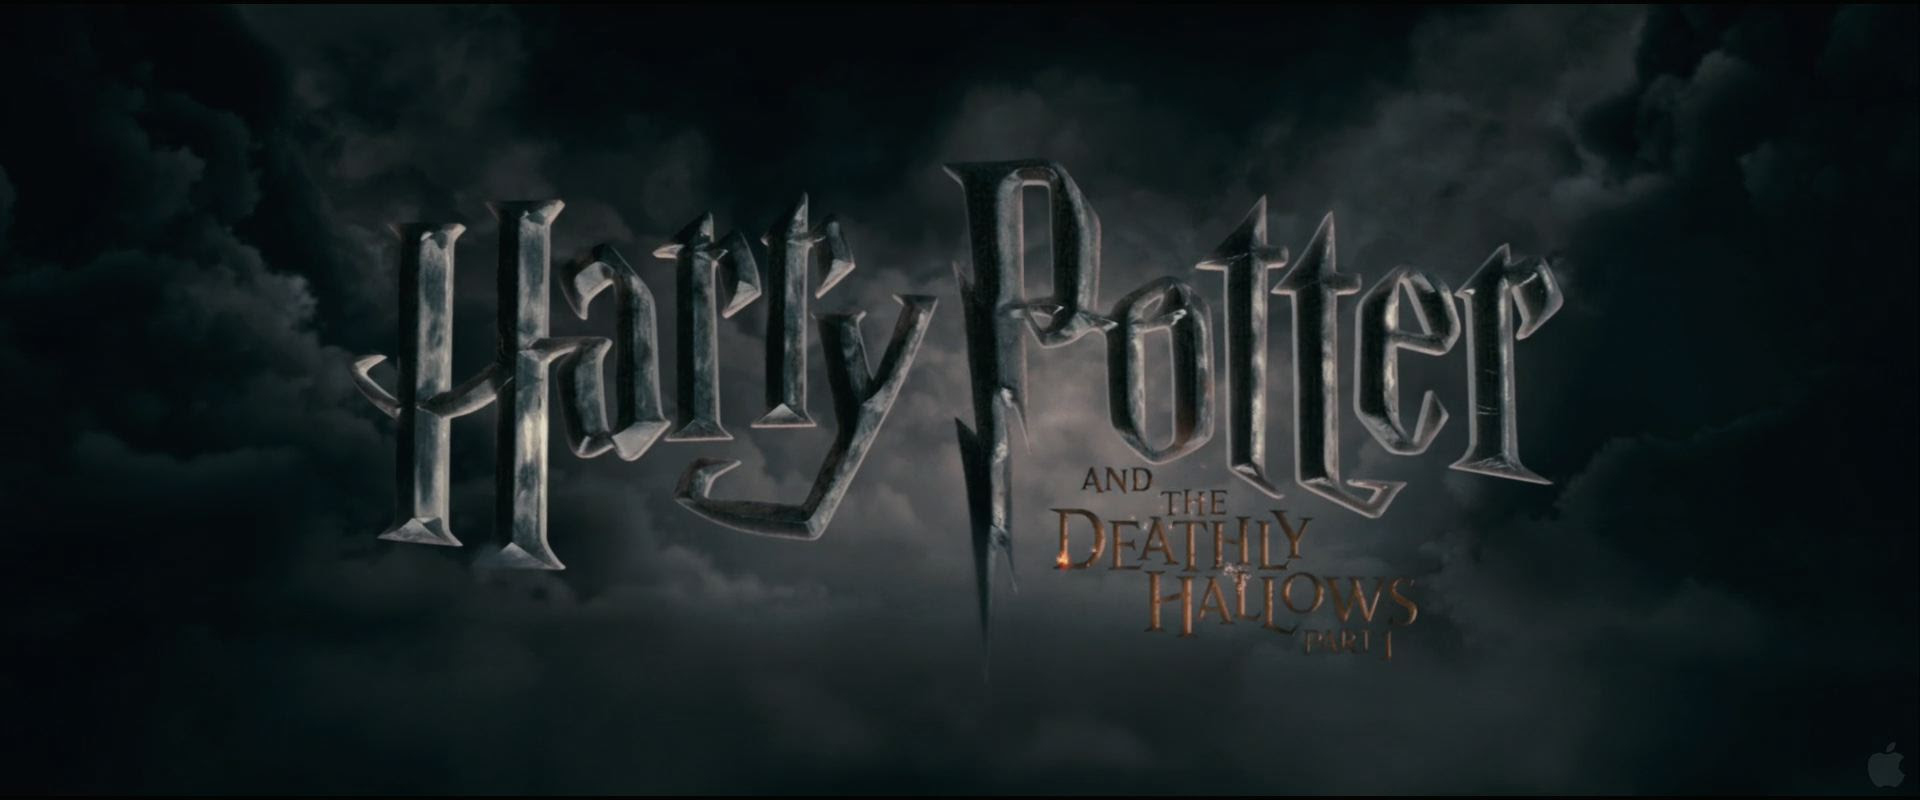 Harry Potter And The Deathly Hallows Hd Wallpapers